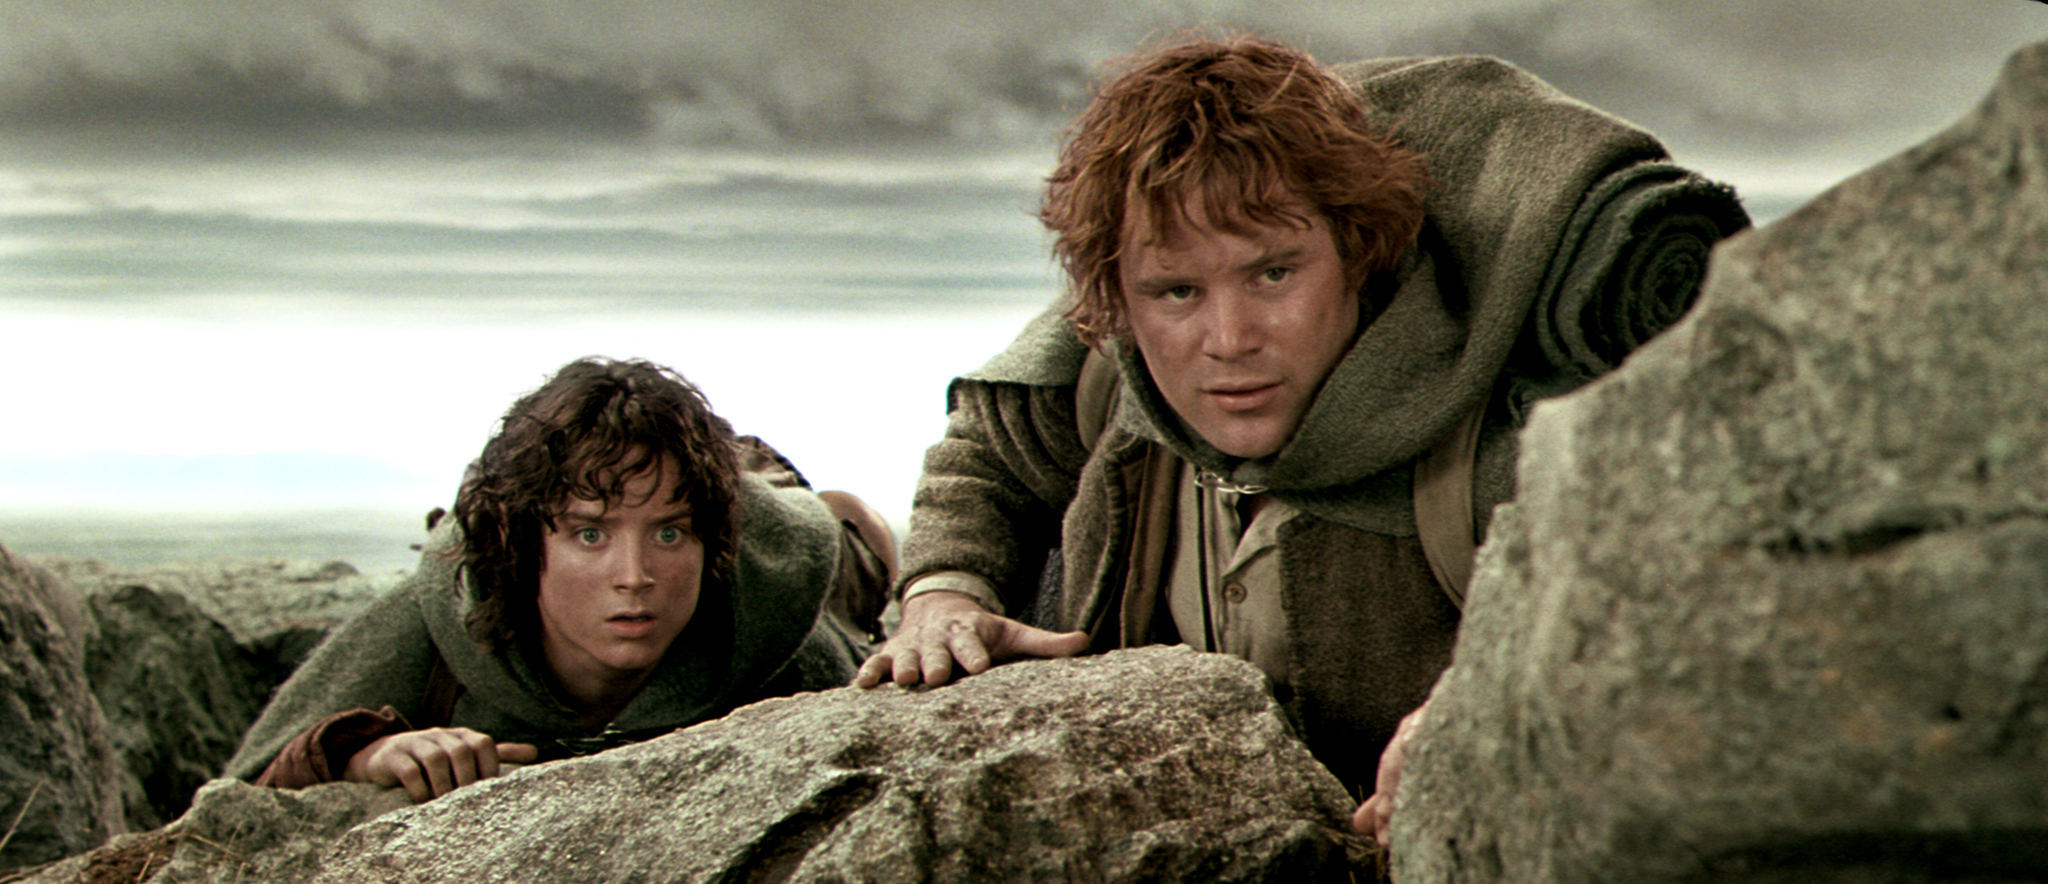 The Lord of the Rings: The Two Towers   Ranking The Lord of The Rings Trilogy Movies   Popcorn Banter